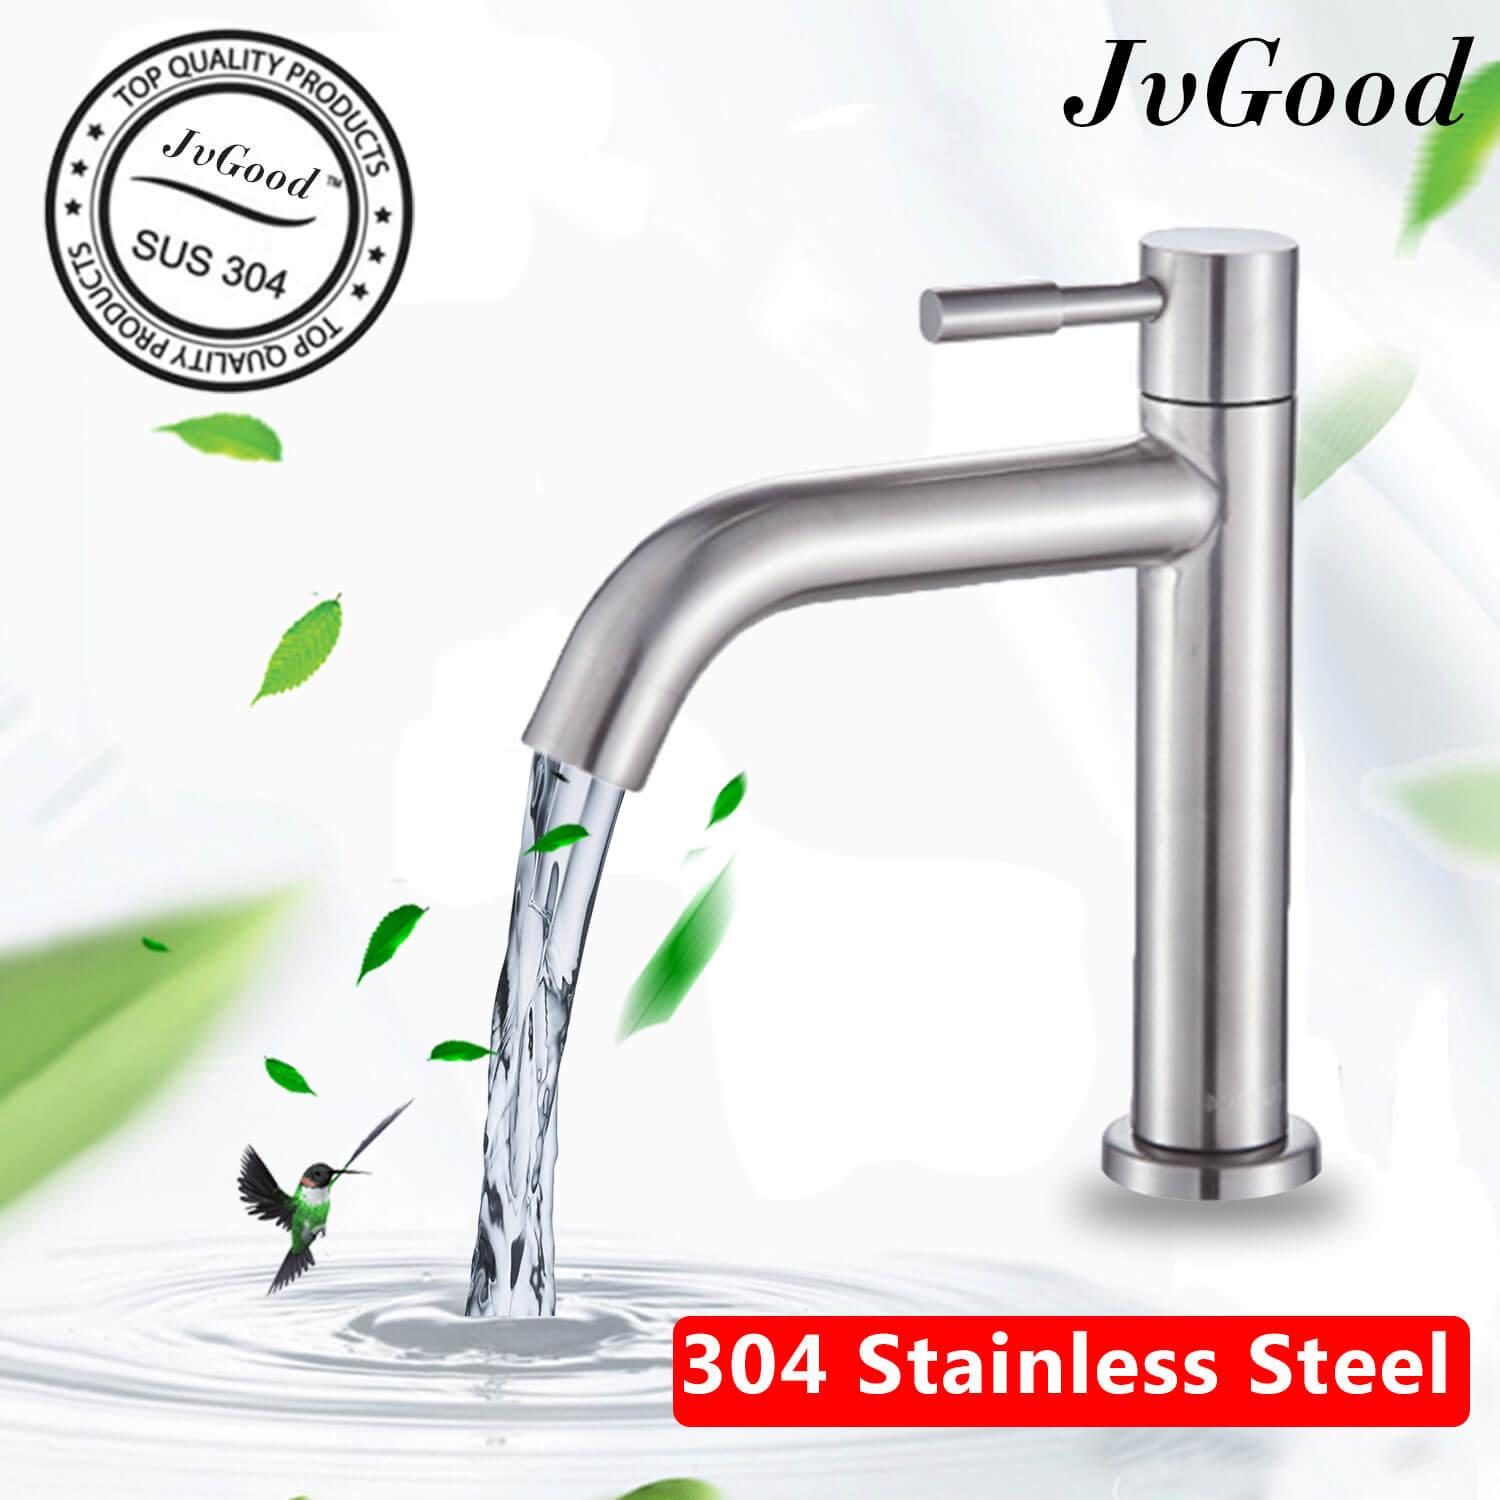 Jvgood Bathroom Tapware, Stainless Steel Basin Faucet Sus 304 Bathroom Faucet Basin Tap Bathroom Wash Sink Basin Single Lever Cold Water Bib Tap Faucet (nickel) By Jvgood.